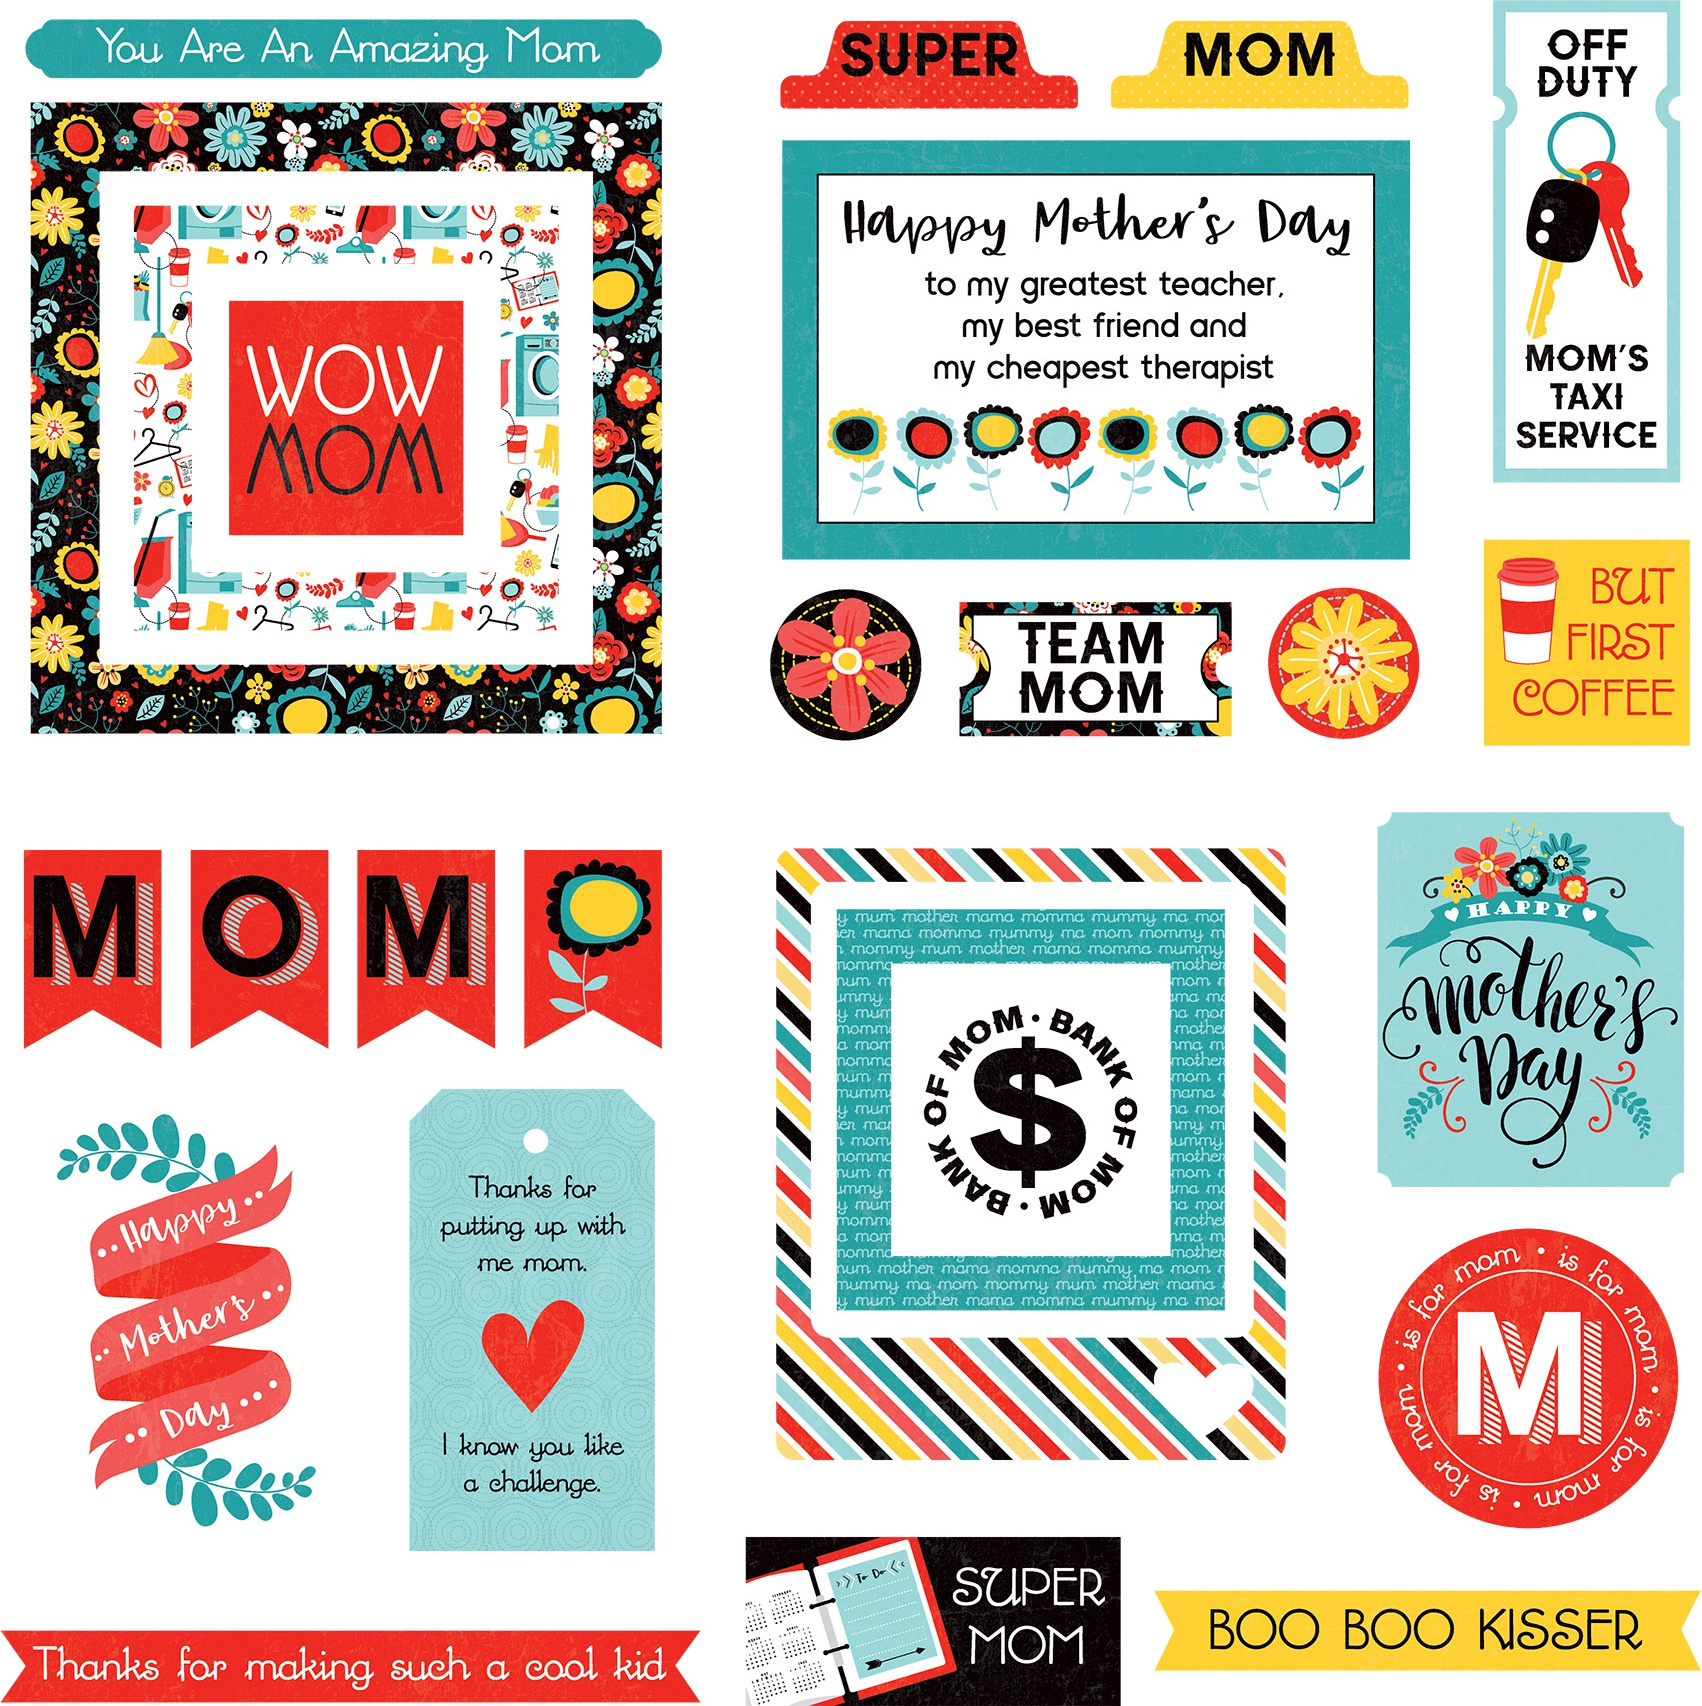 Best Mom Ever Ephemera Cardstock Die-Cuts-